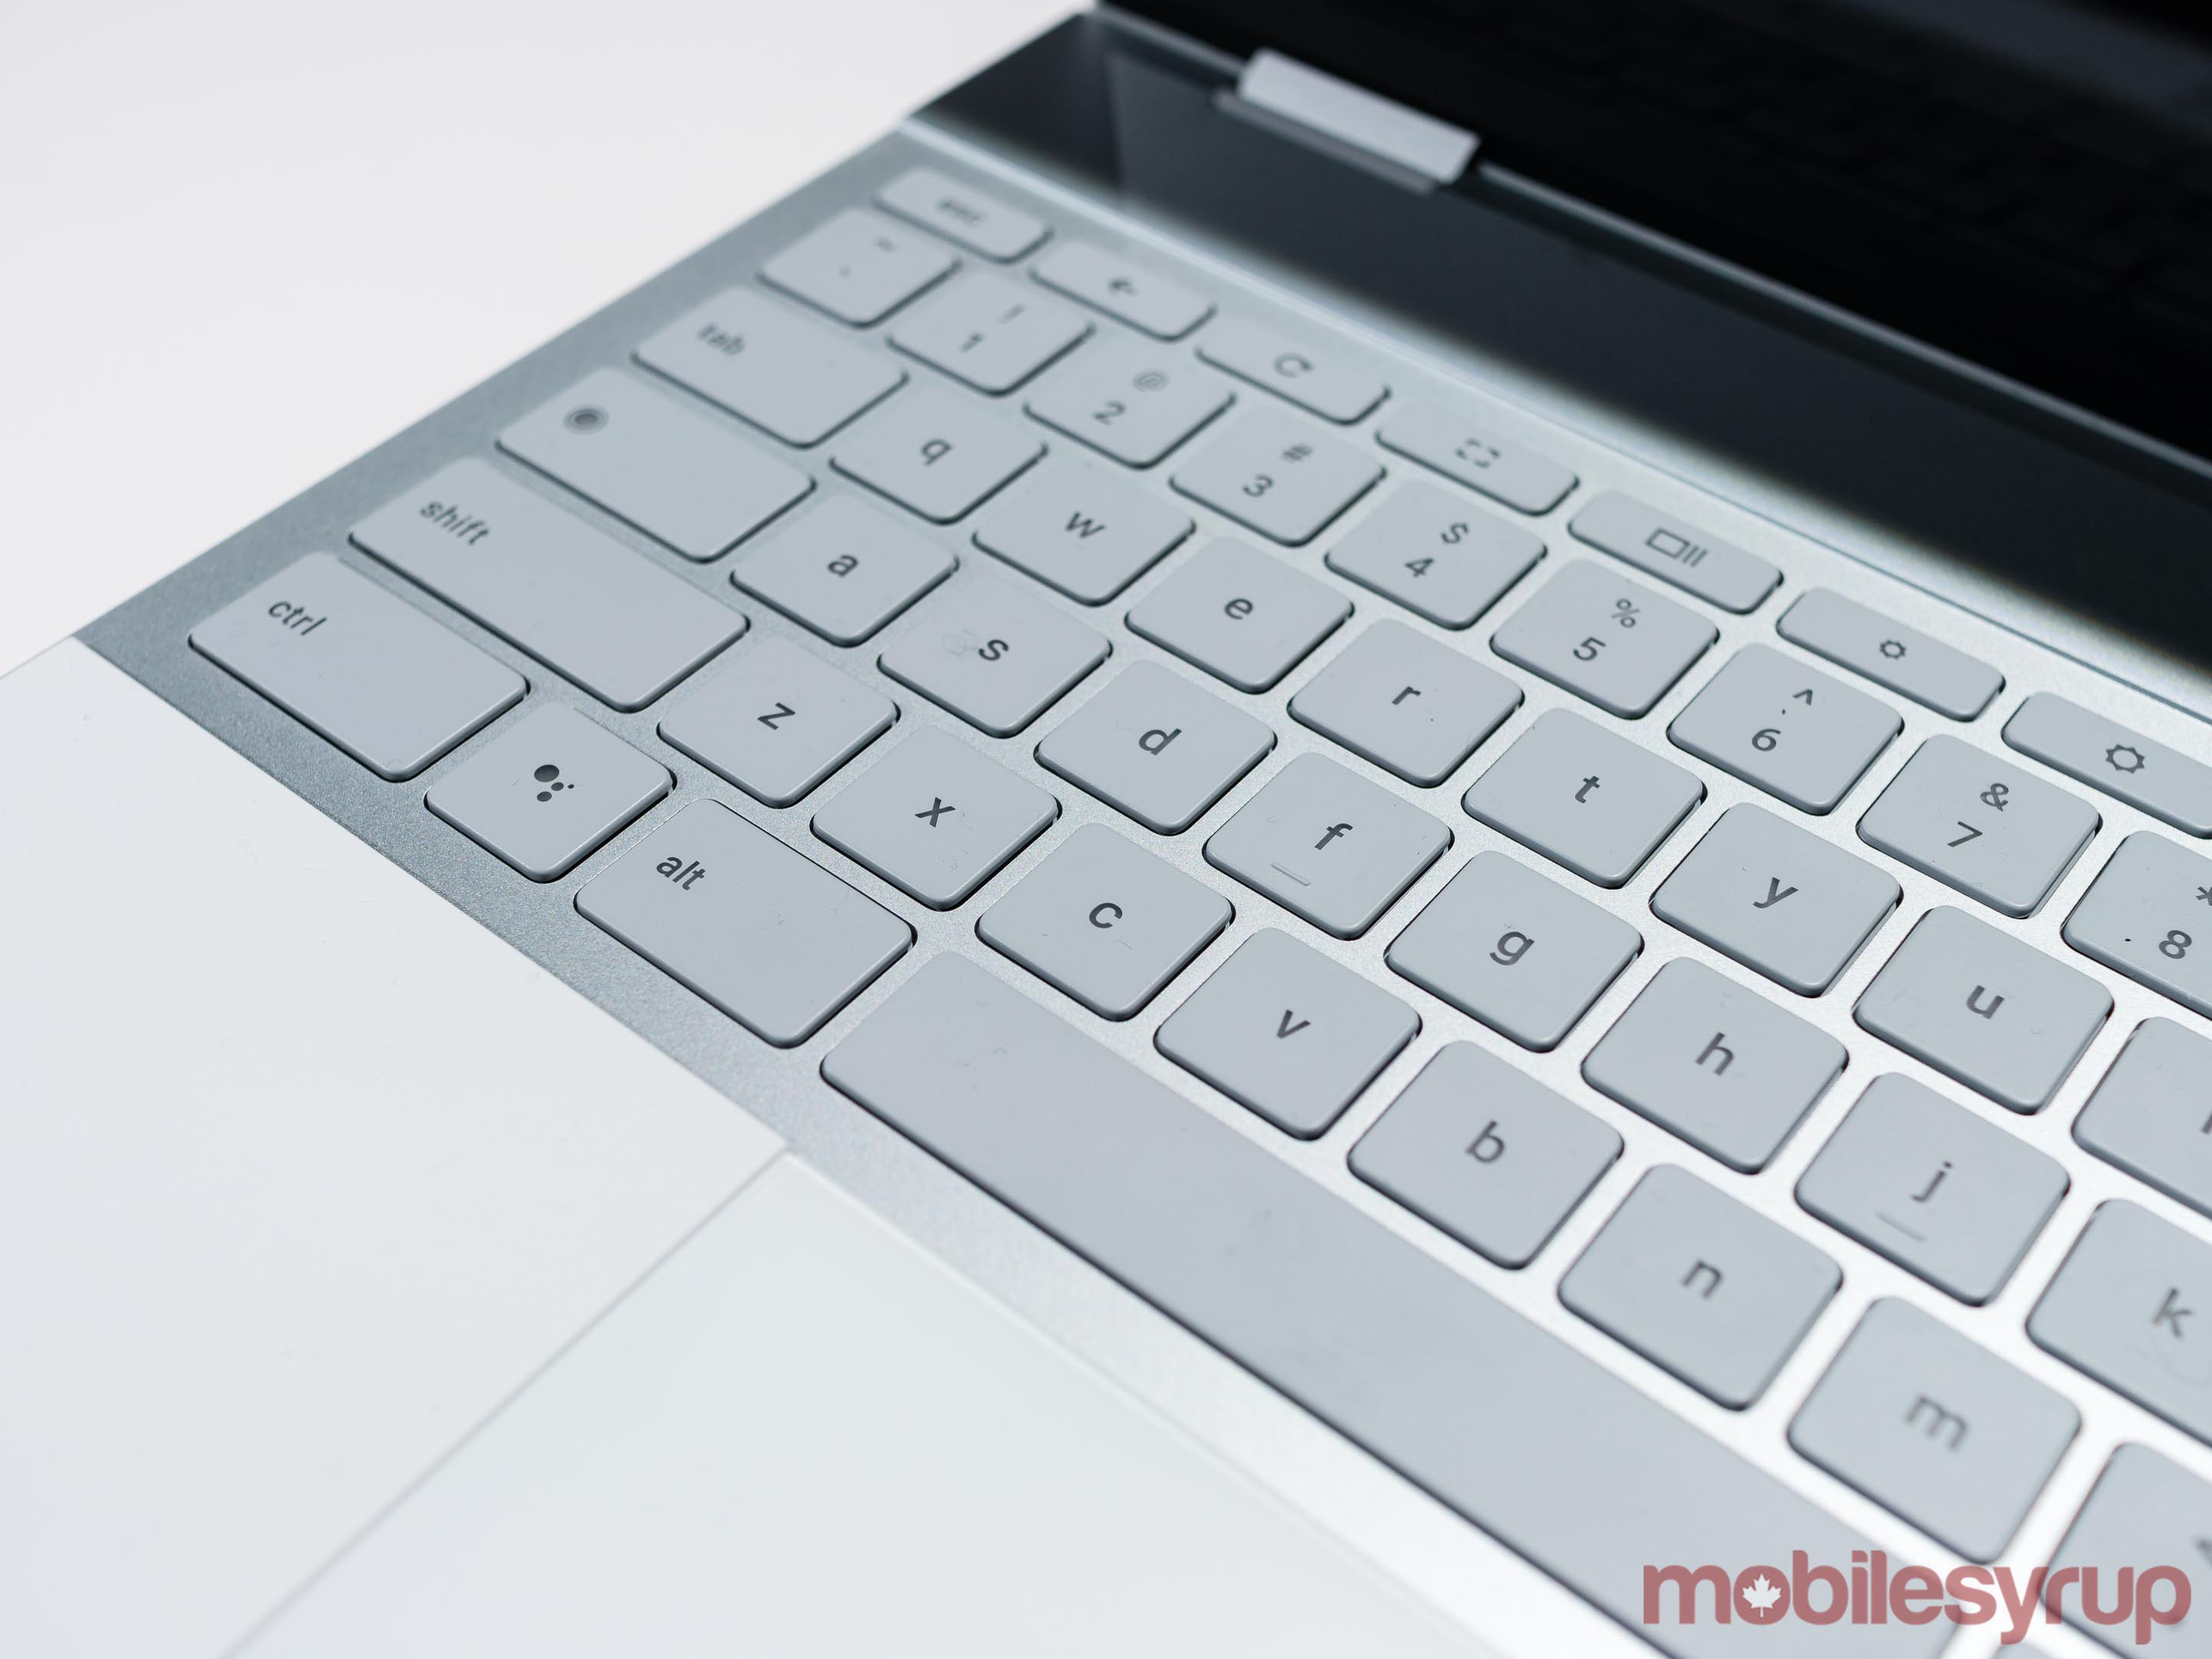 The Pixelbook's keyboard